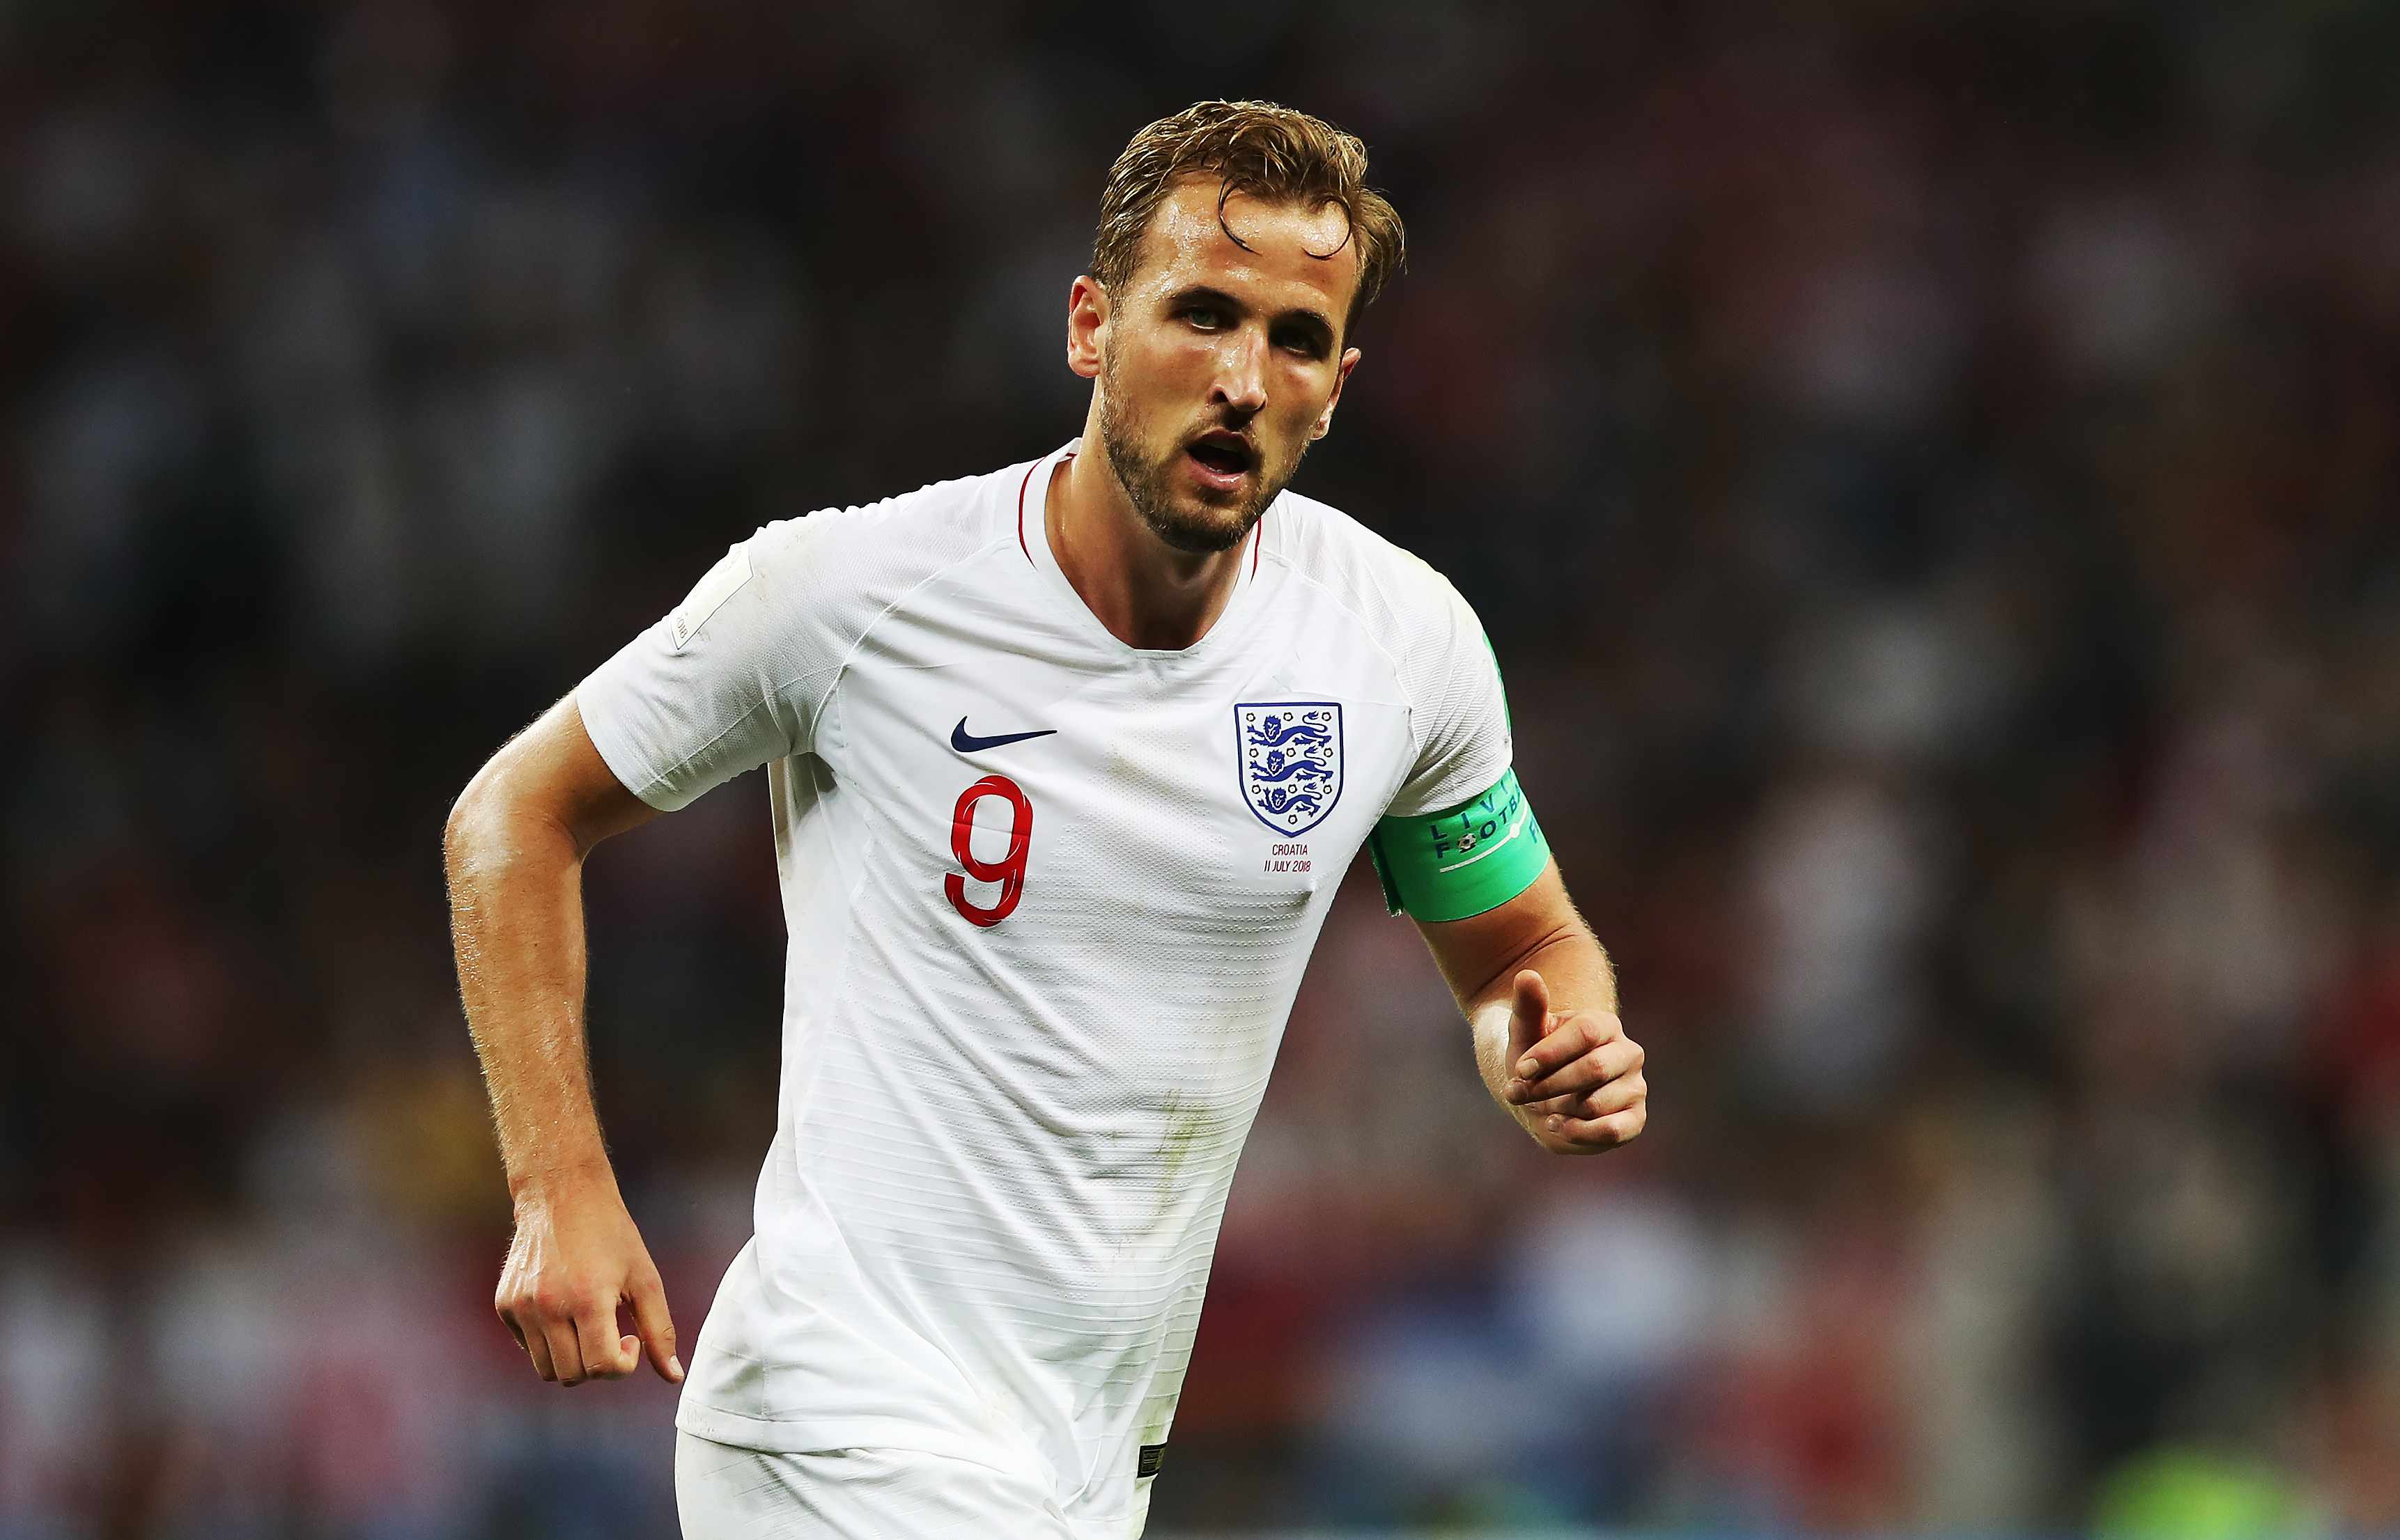 MOSCOW, RUSSIA - JULY 11: Harry Kane of England is seen during the 2018 FIFA World Cup Russia Semi Final match between England and Croatia at Luzhniki Stadium on July 11, 2018 in Moscow, Russia. (Photo by Ian MacNicol/Getty Images)